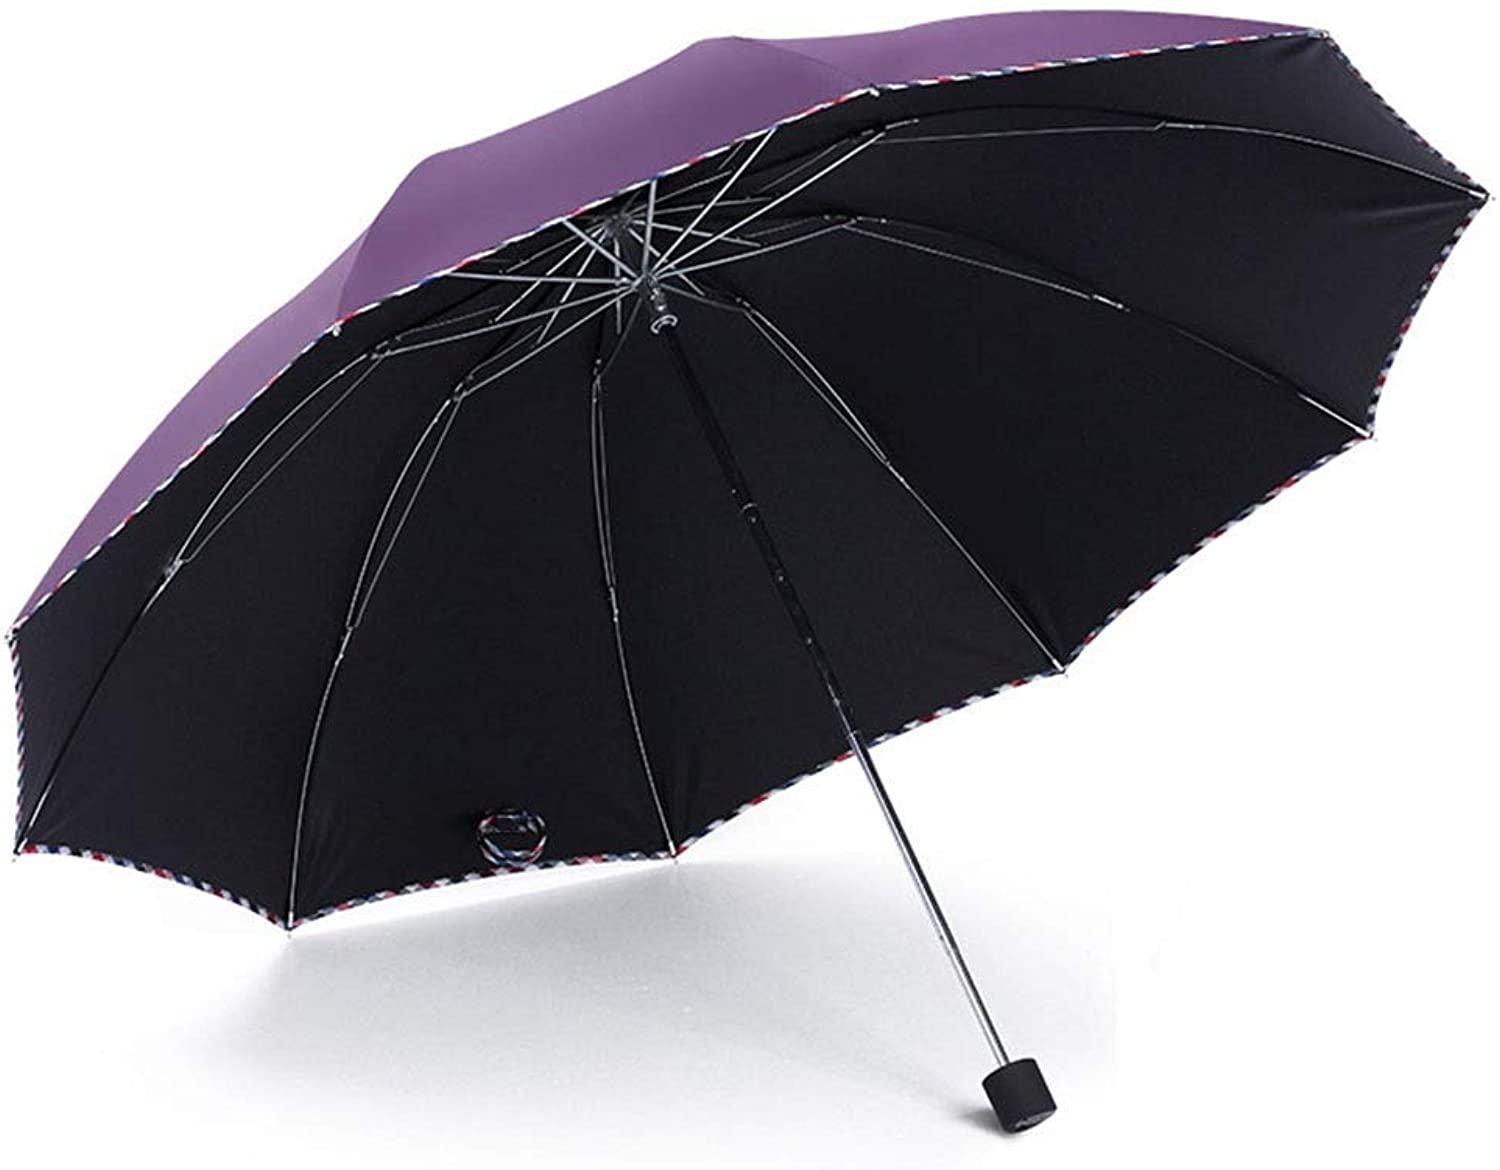 JBFZDS Pure color Umbrella, Foldable Three Fold, Sun Predection UV Predection, Sunshade for Men and Women, Can Accommodate Two People (color   Purple)